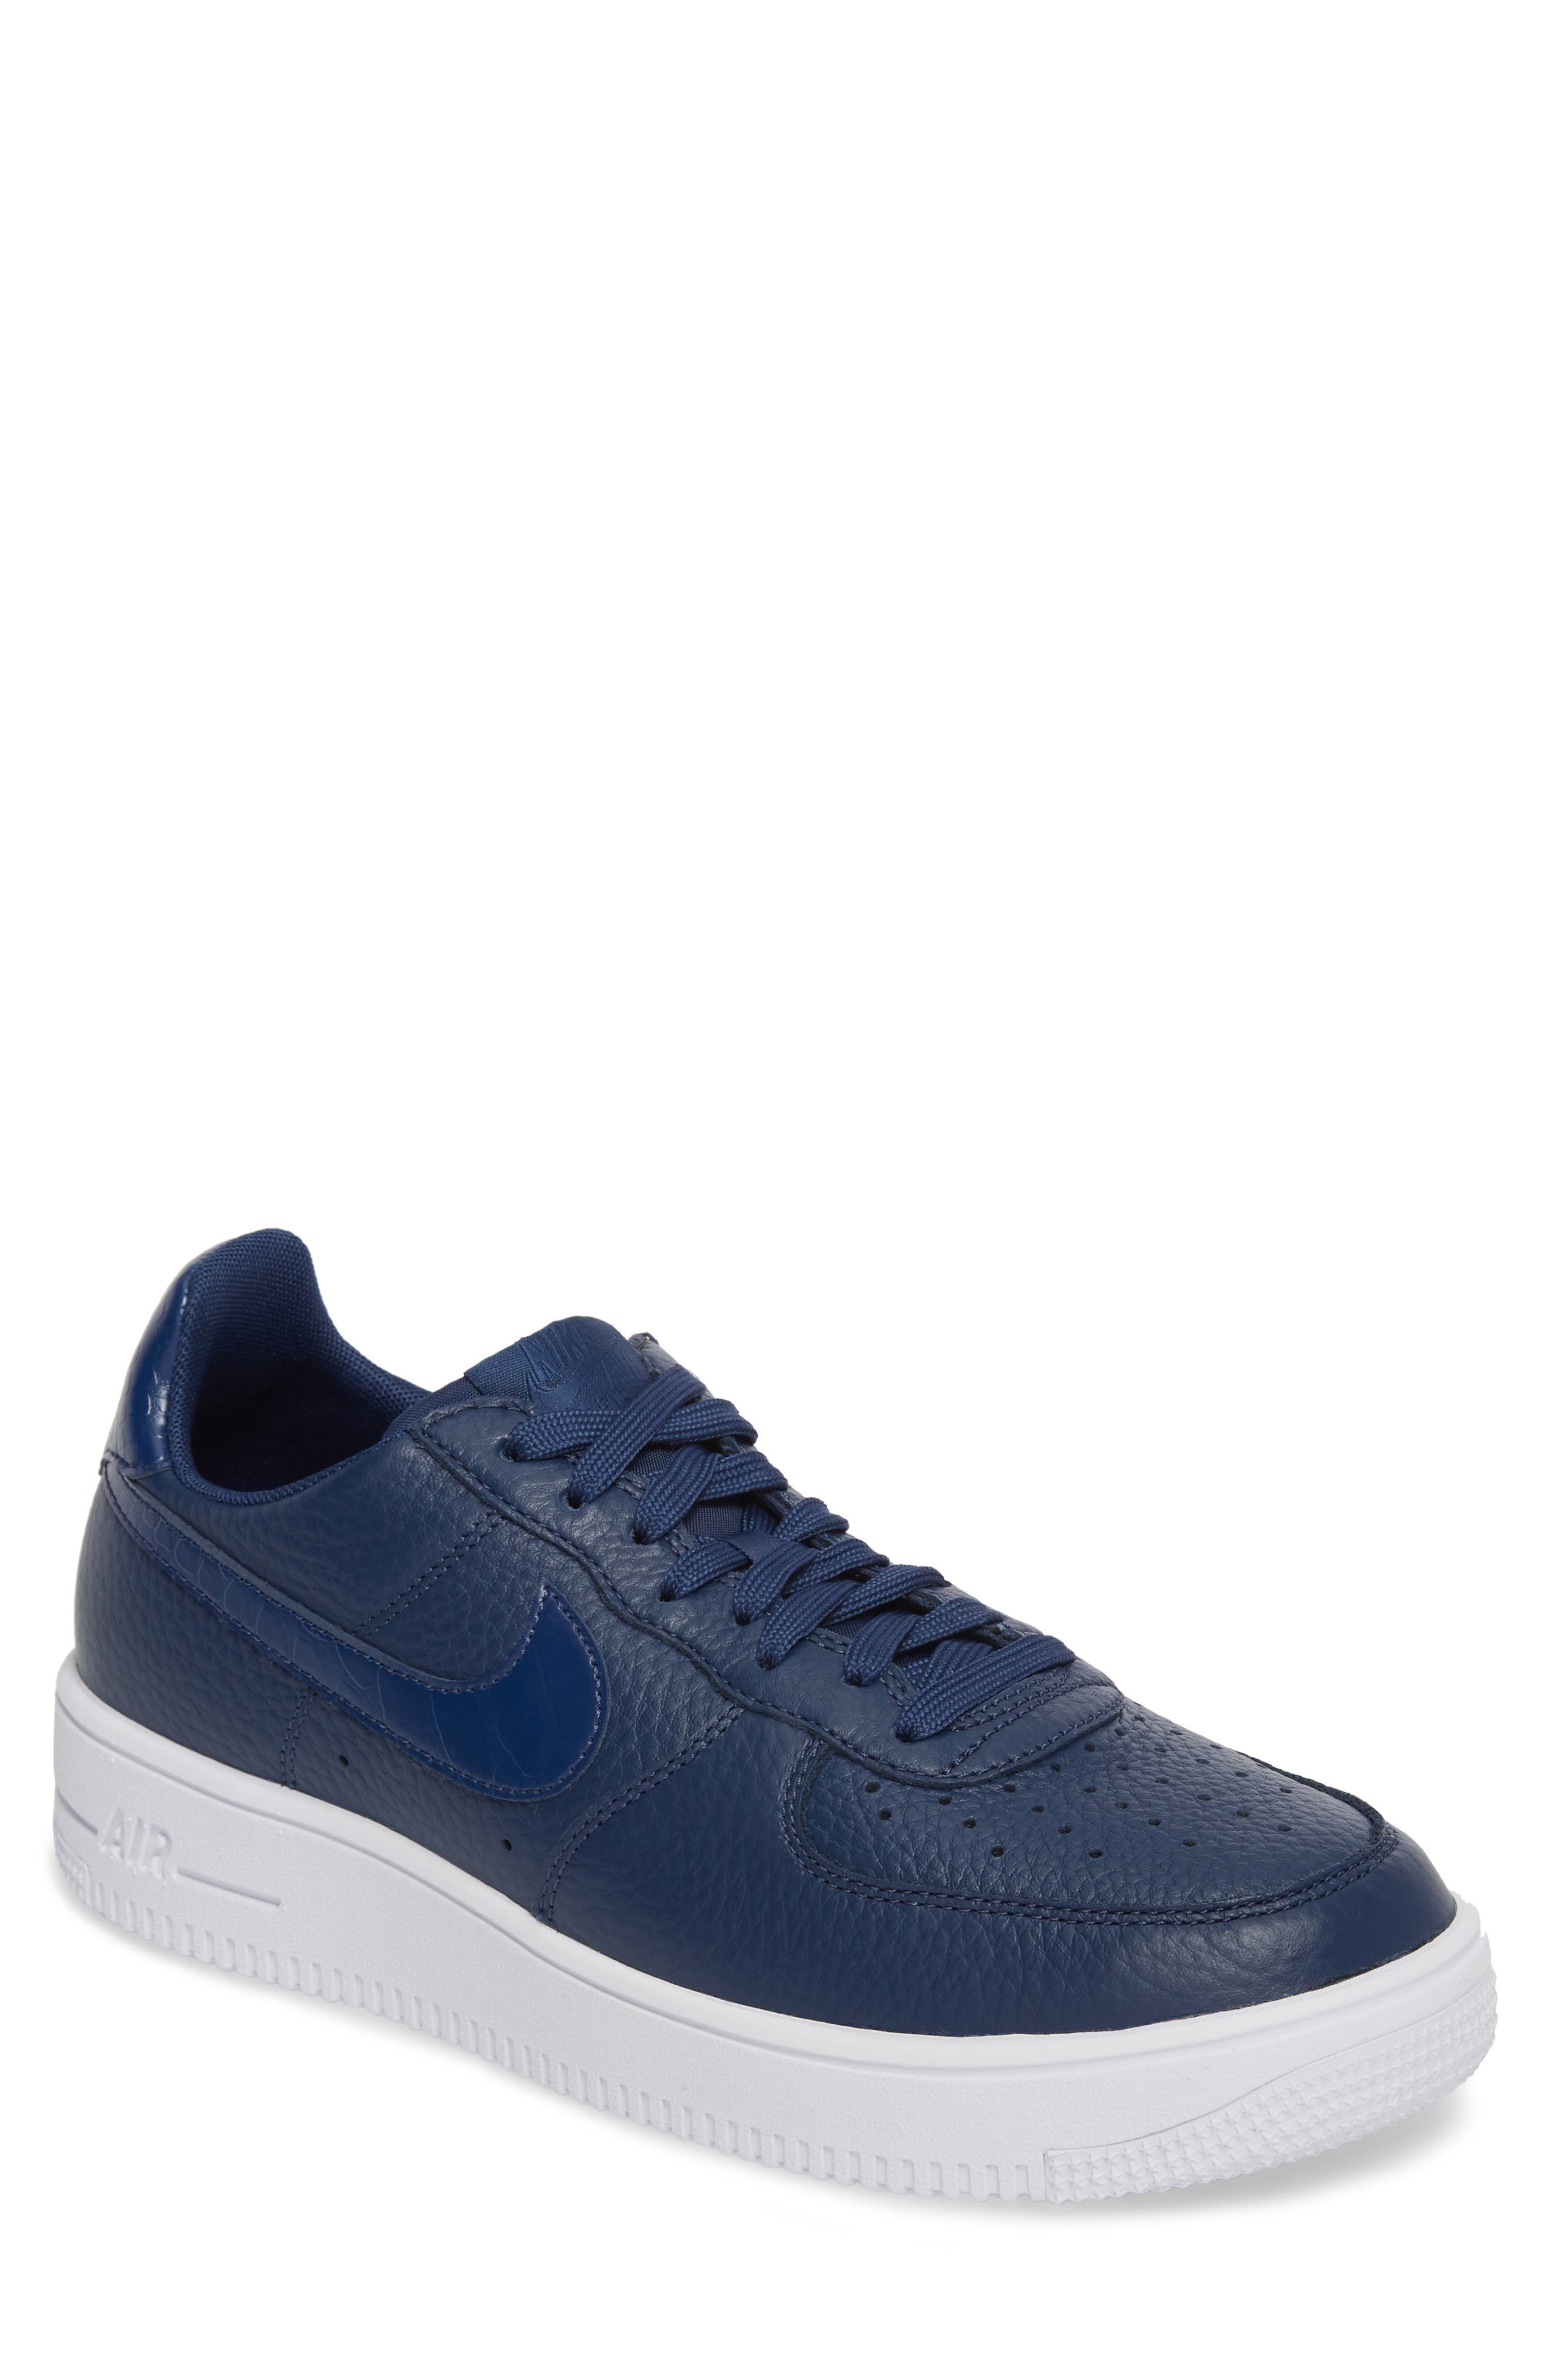 Air Force 1 Ultraforce Sneaker,                             Main thumbnail 1, color,                             Navy/ Navy/ White